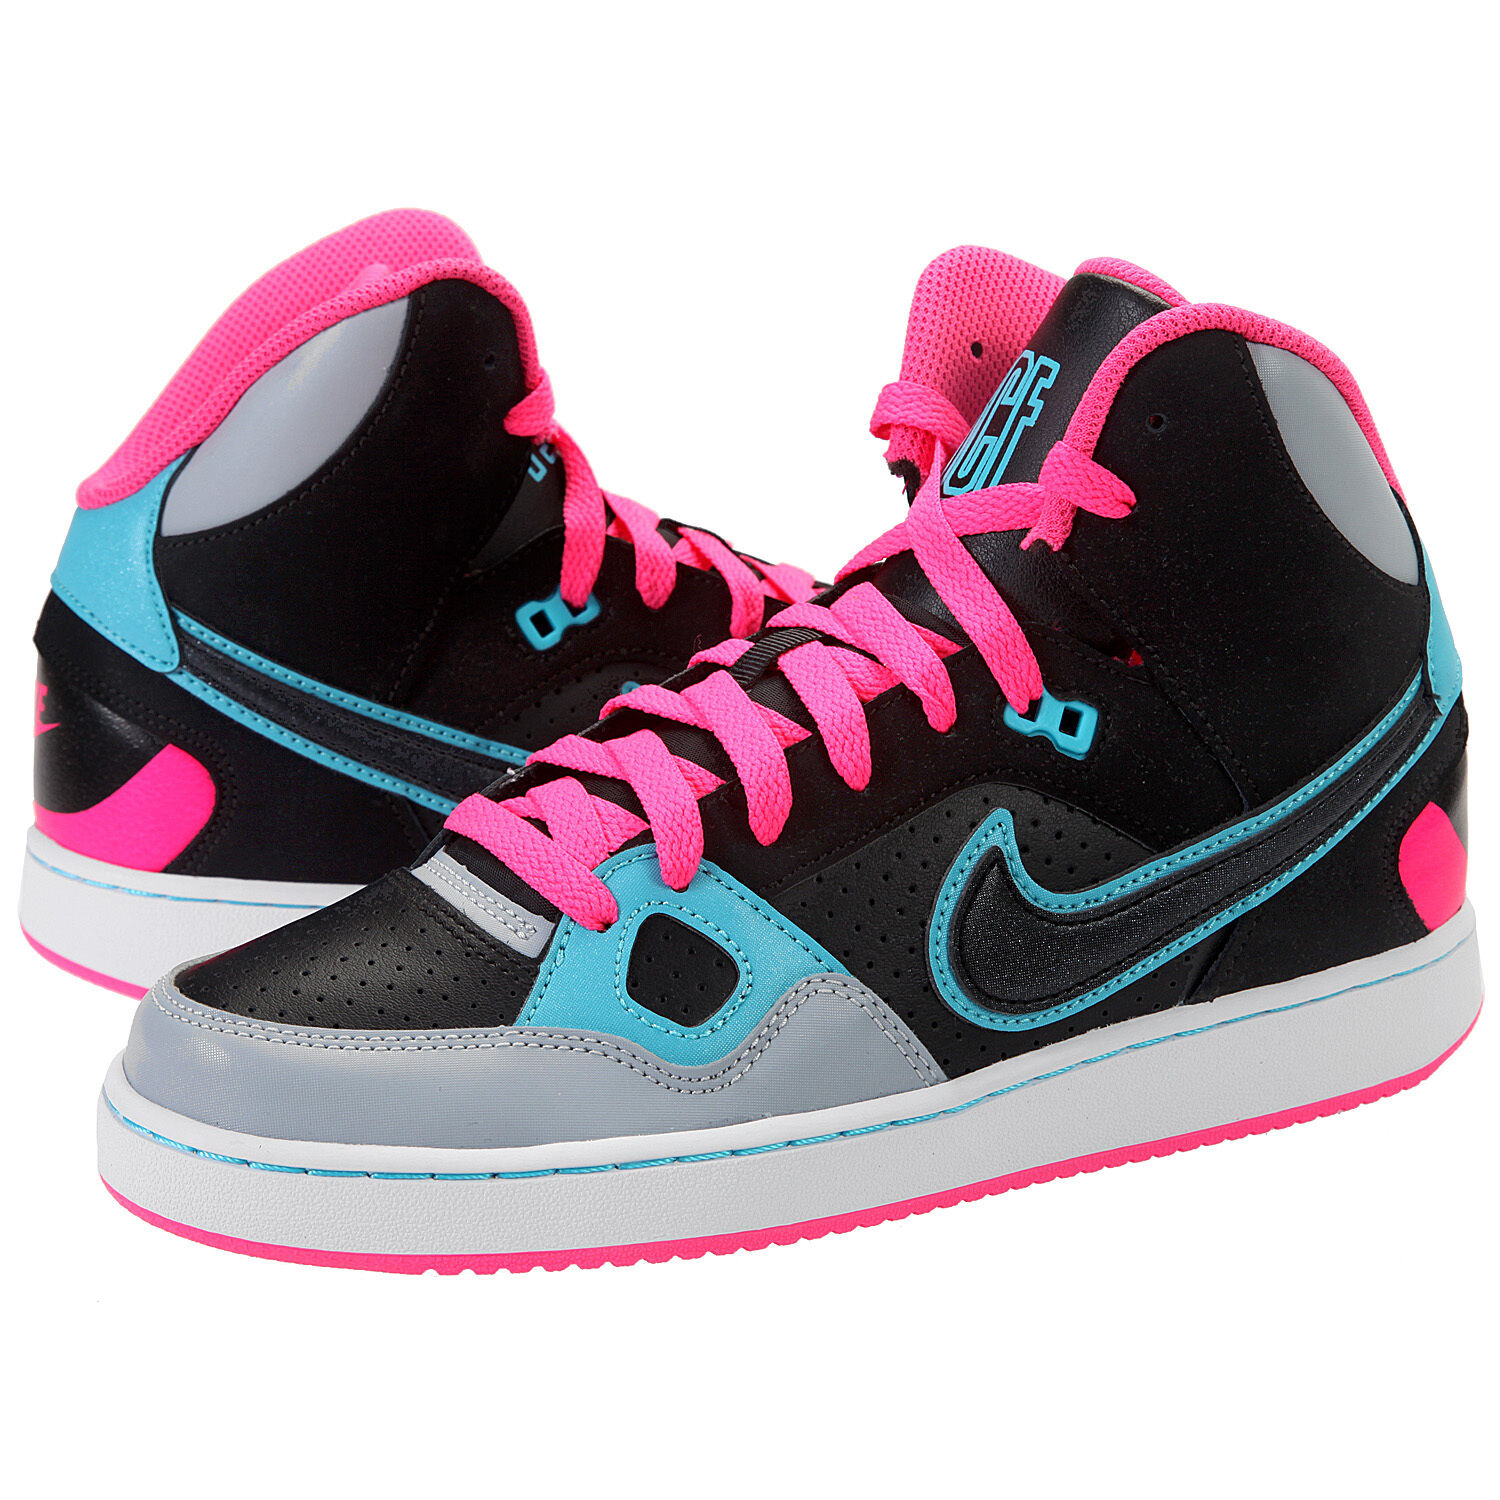 Nike Son Of Force Mid gris Noir / Gris 3.5_4.5_5_5.5 /rose Trainers Chaussures UK- 3.5_4.5_5_5.5 Gris 762292